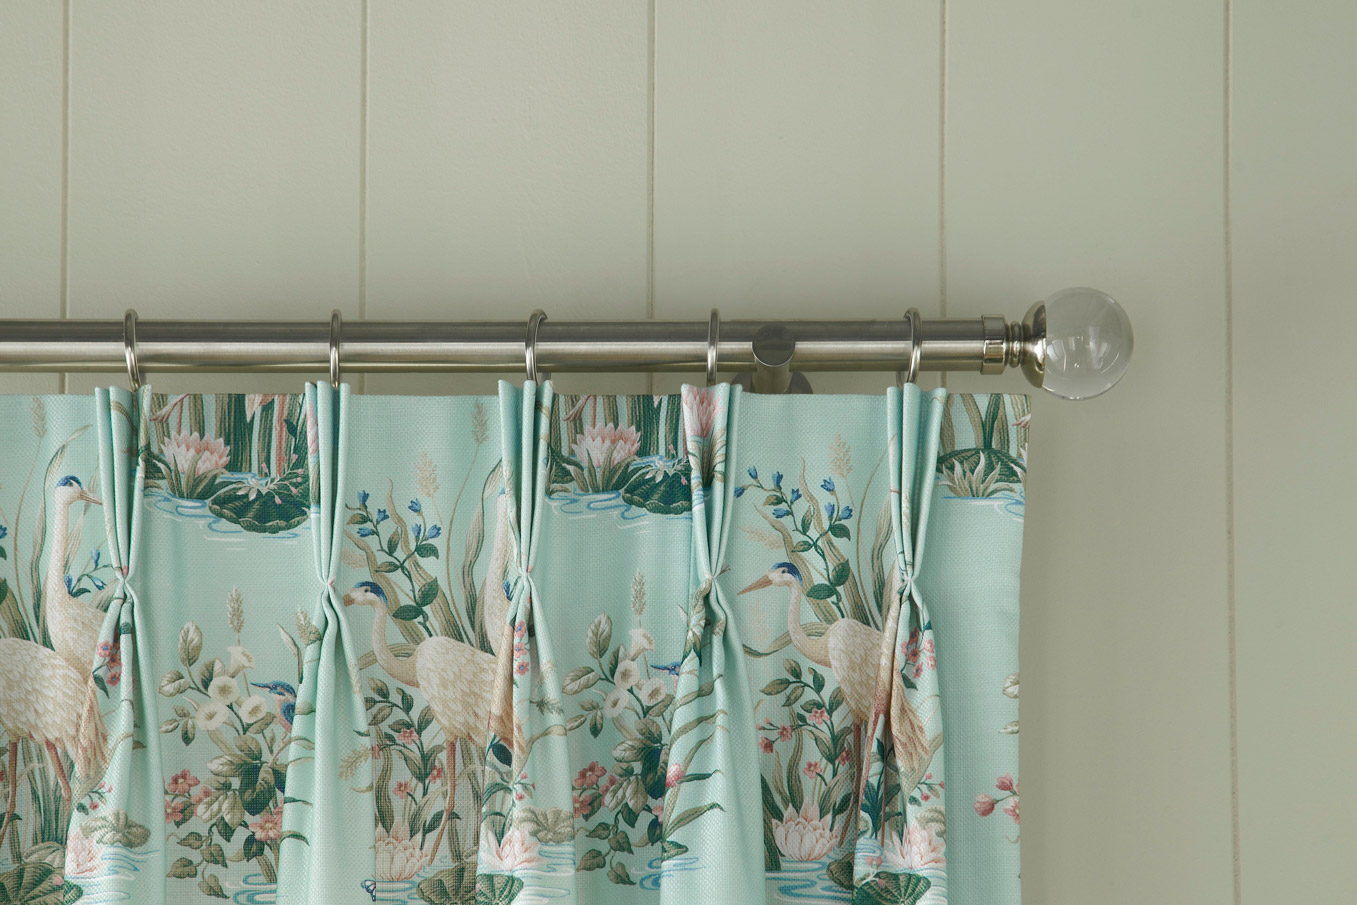 Light Blue Curtains on Silver Rail